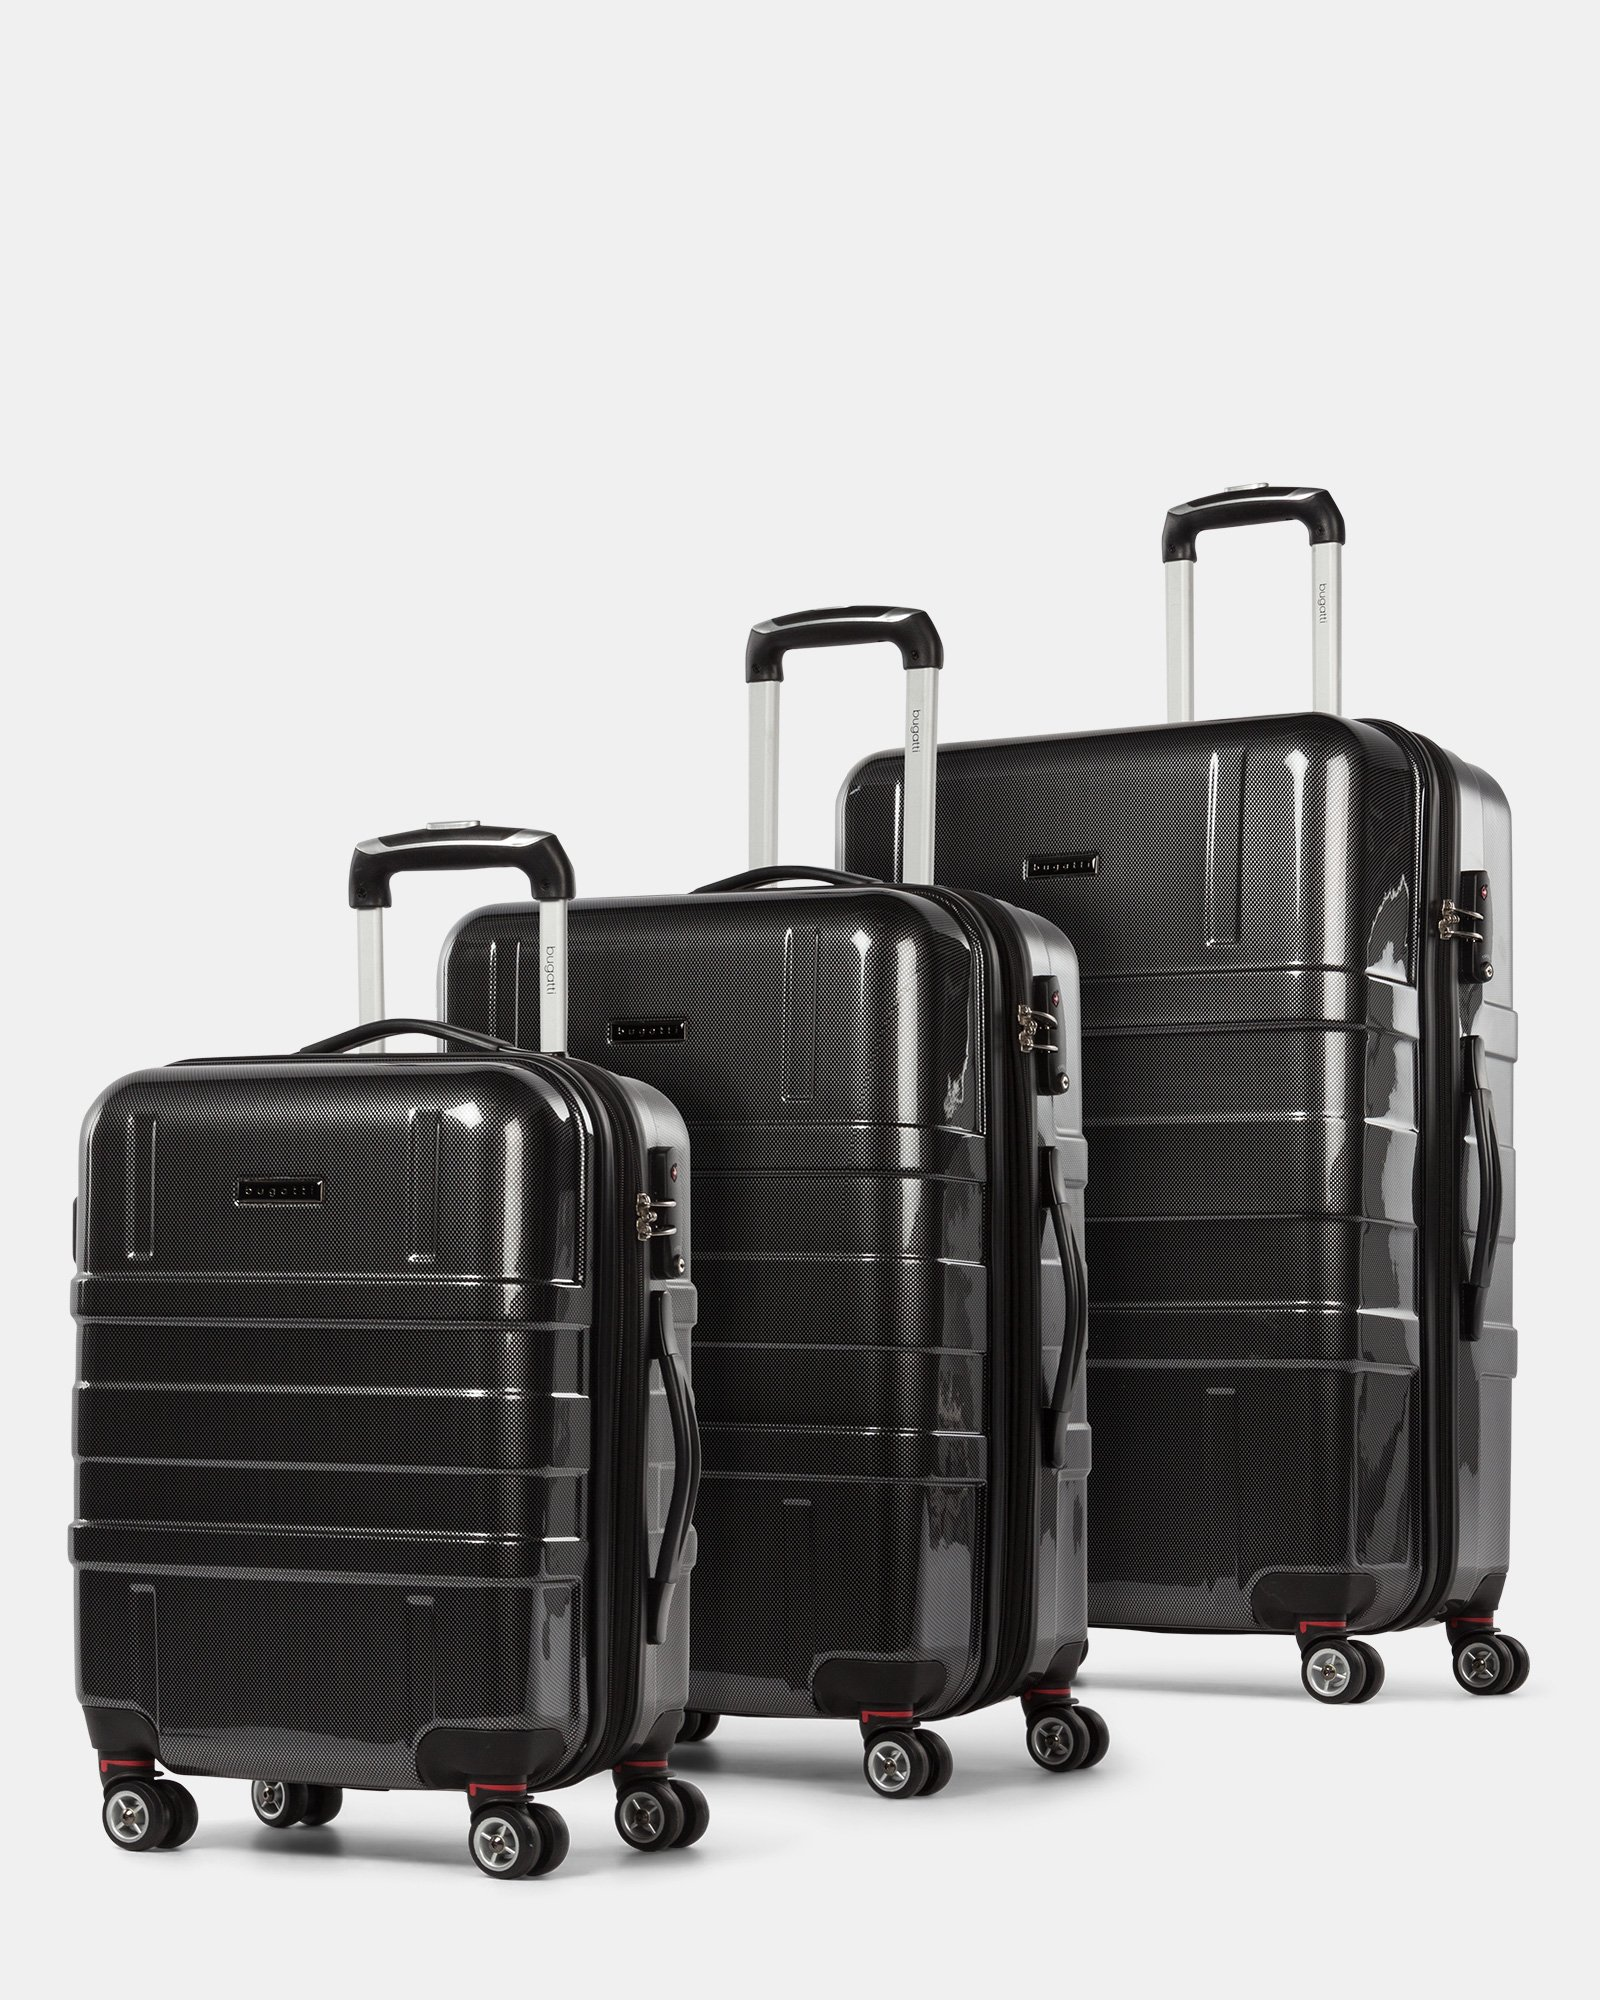 aea15a1f3038 3 Piece Hardside Luggage Set